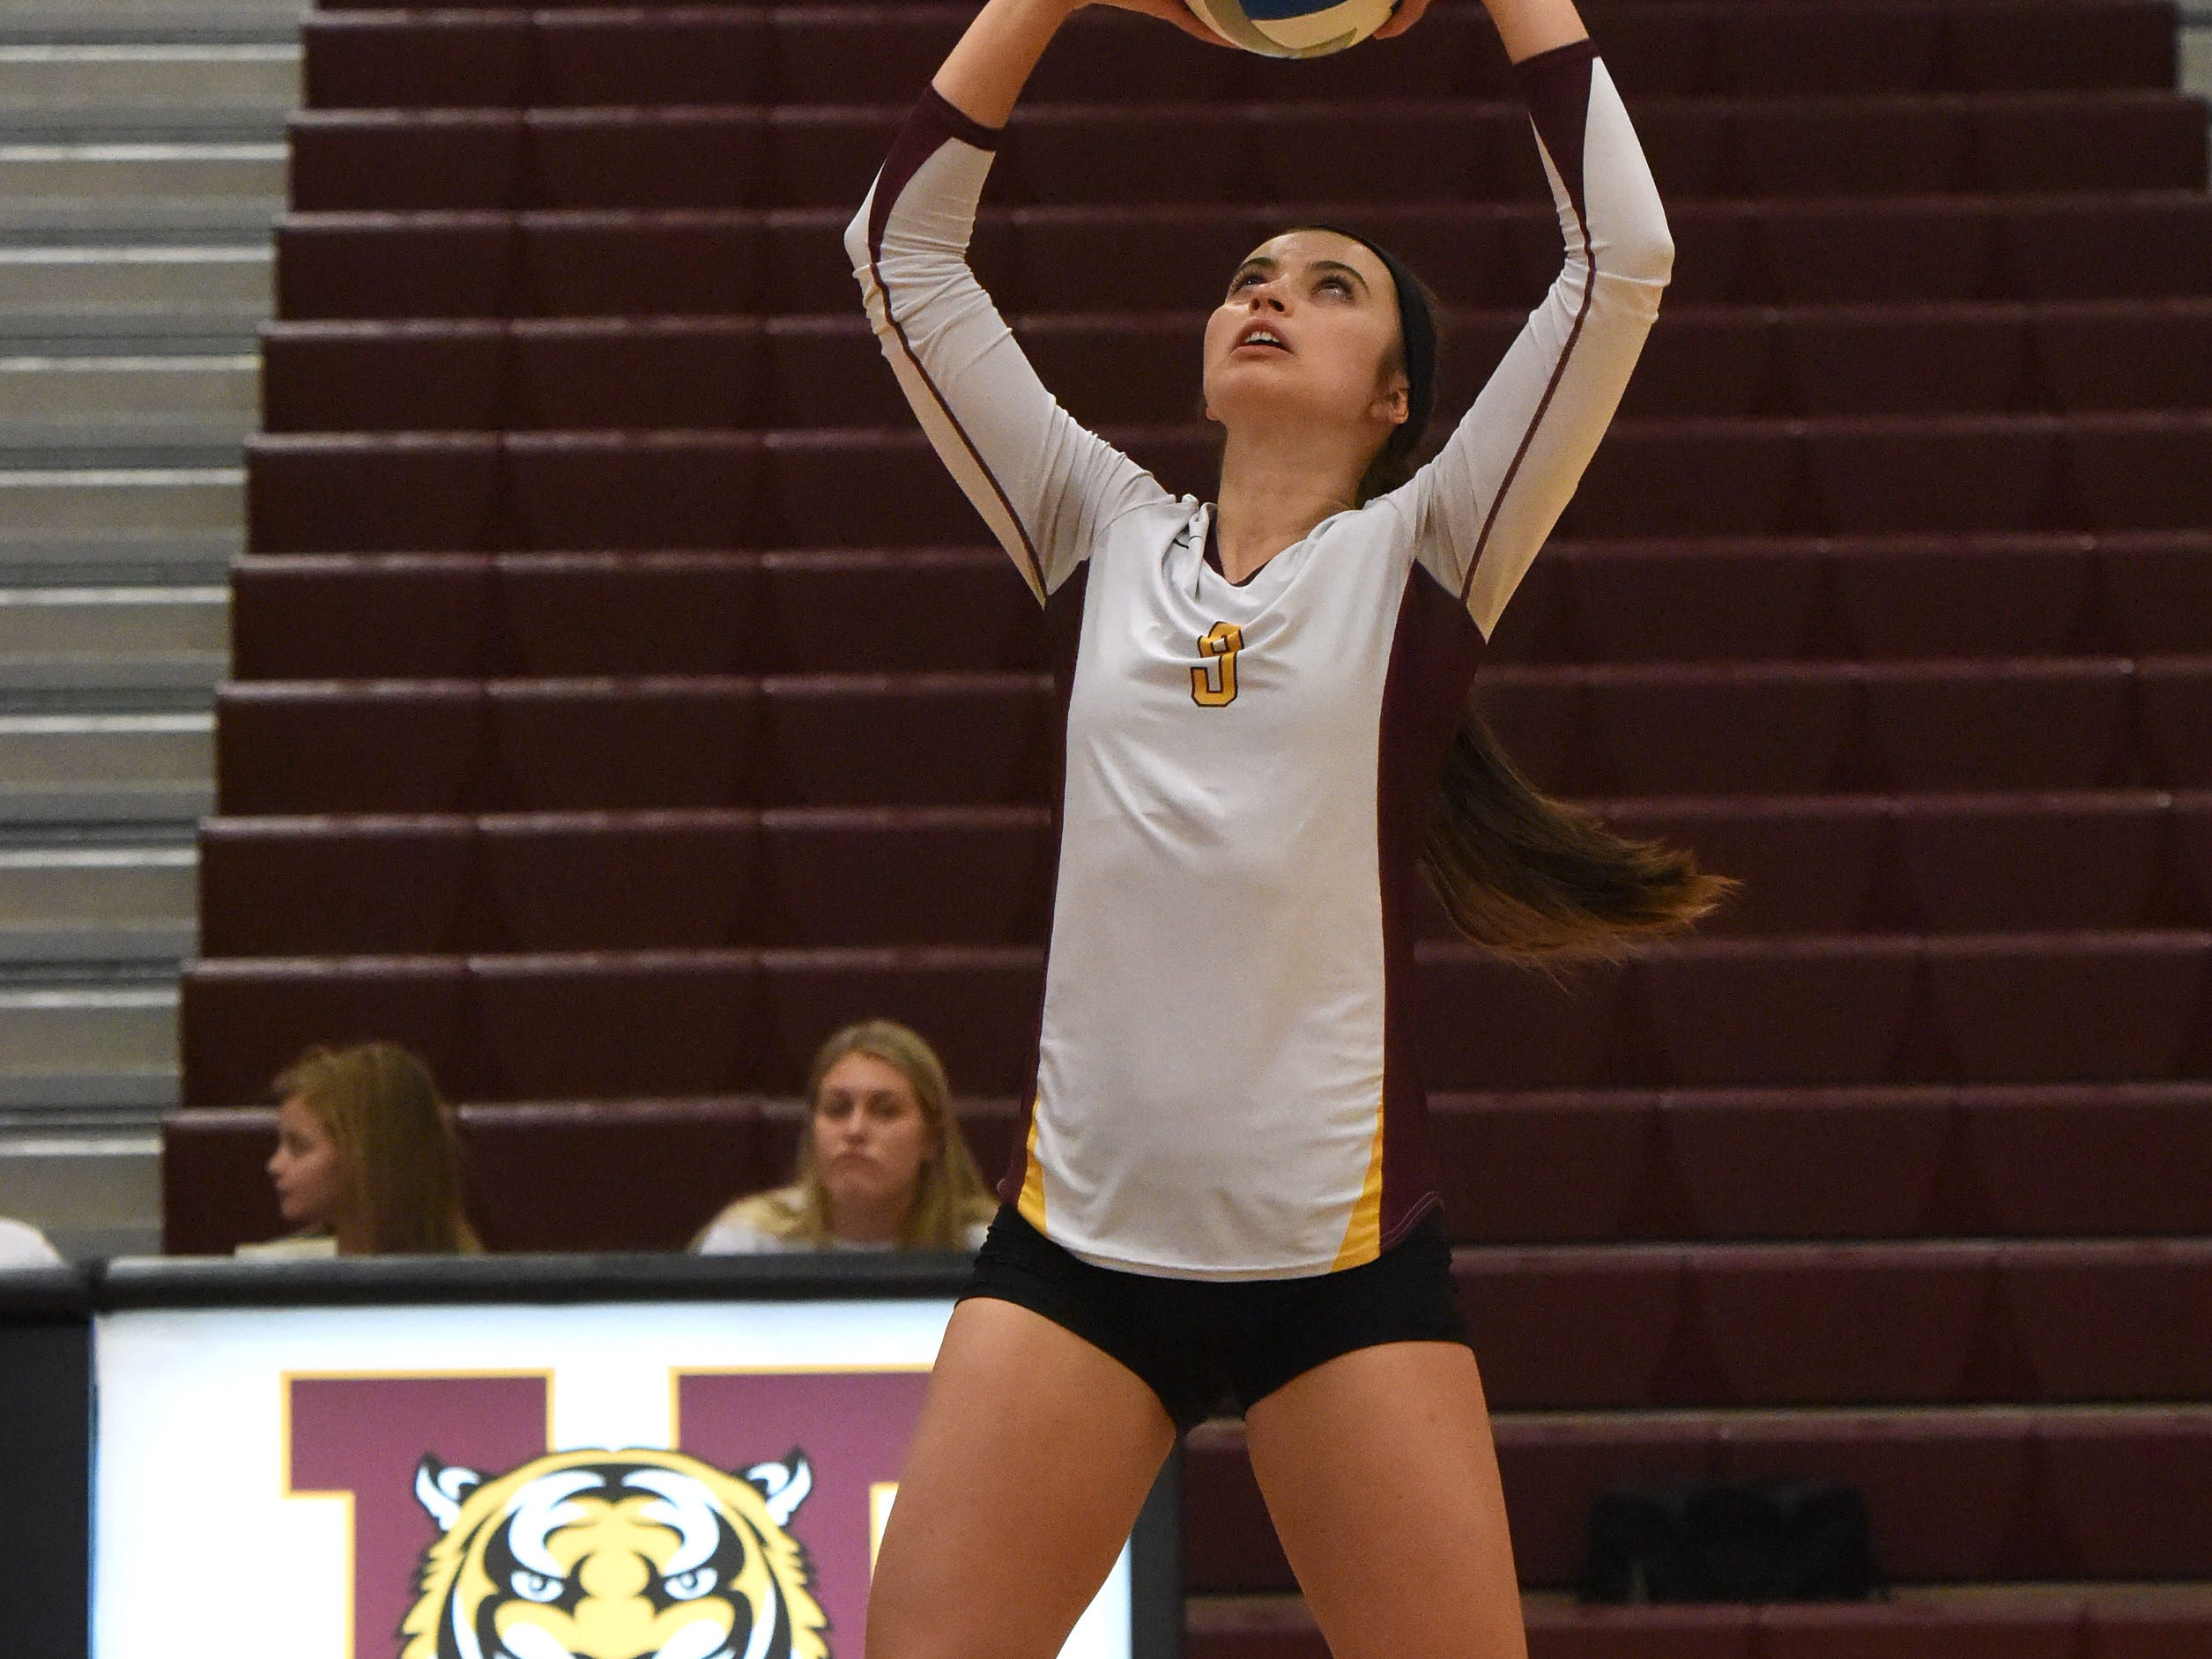 Harrisburg's Julia Sanderson (9) sets the ball during a match against Brookings Tuesday, Oct. 30, 2018 in Harrisburg, S.D.